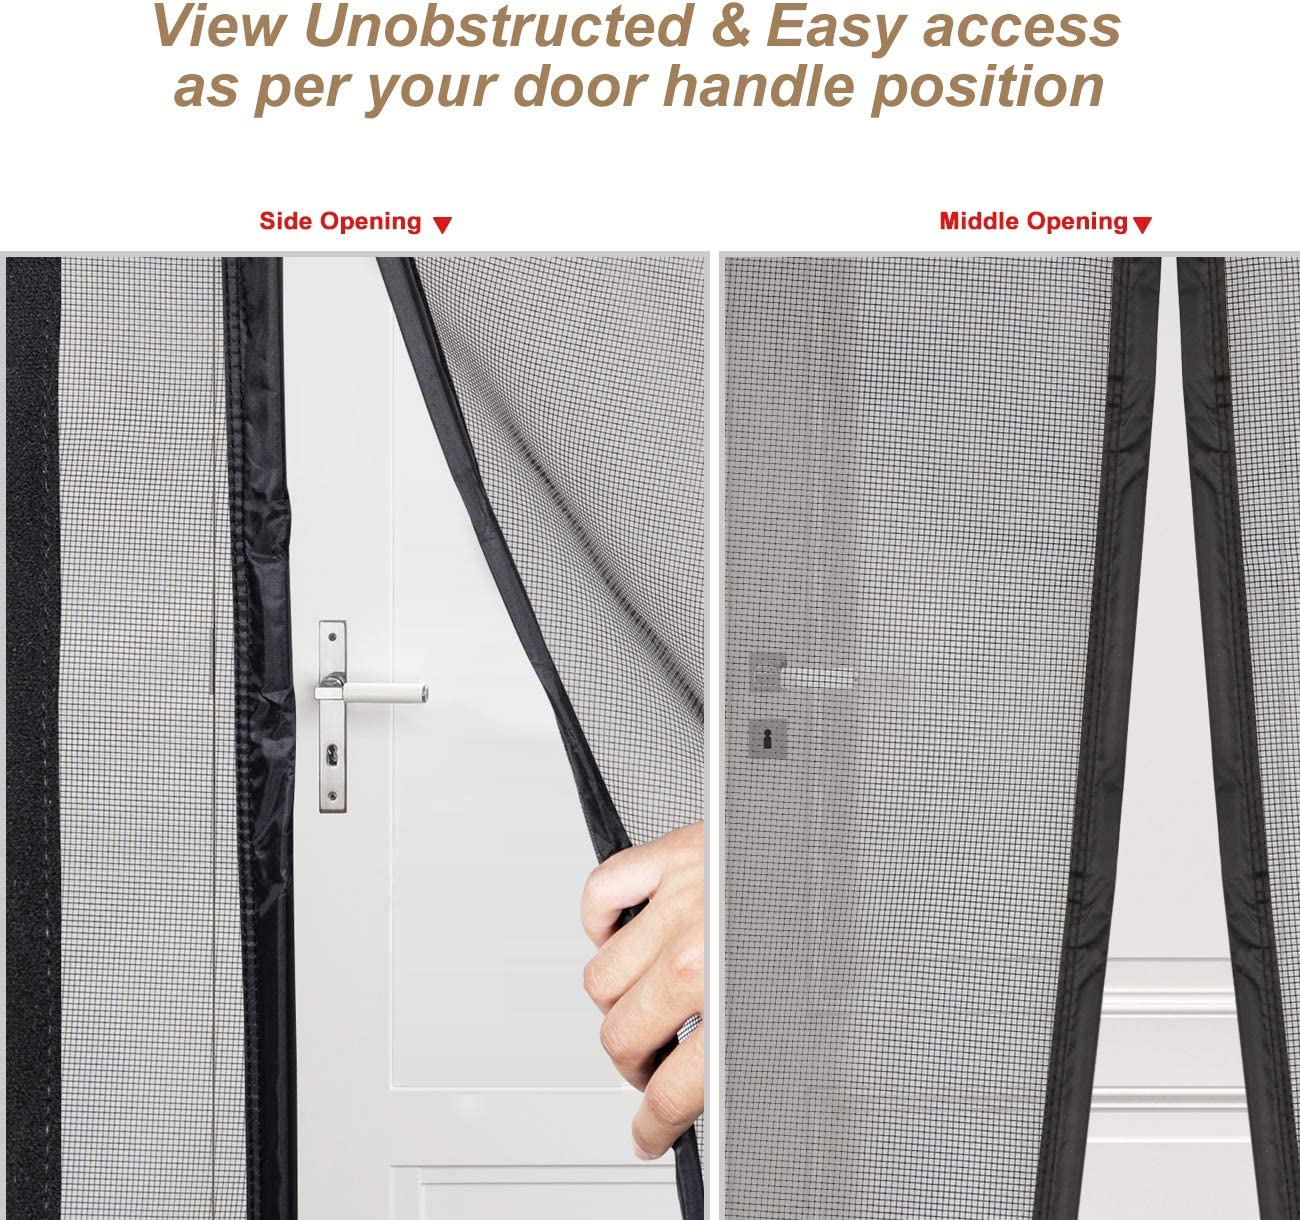 Top Middle Anti-Tearing Mosquito Net Curtain Left Right Side Opening Magnetic Screen Door 36 x 82